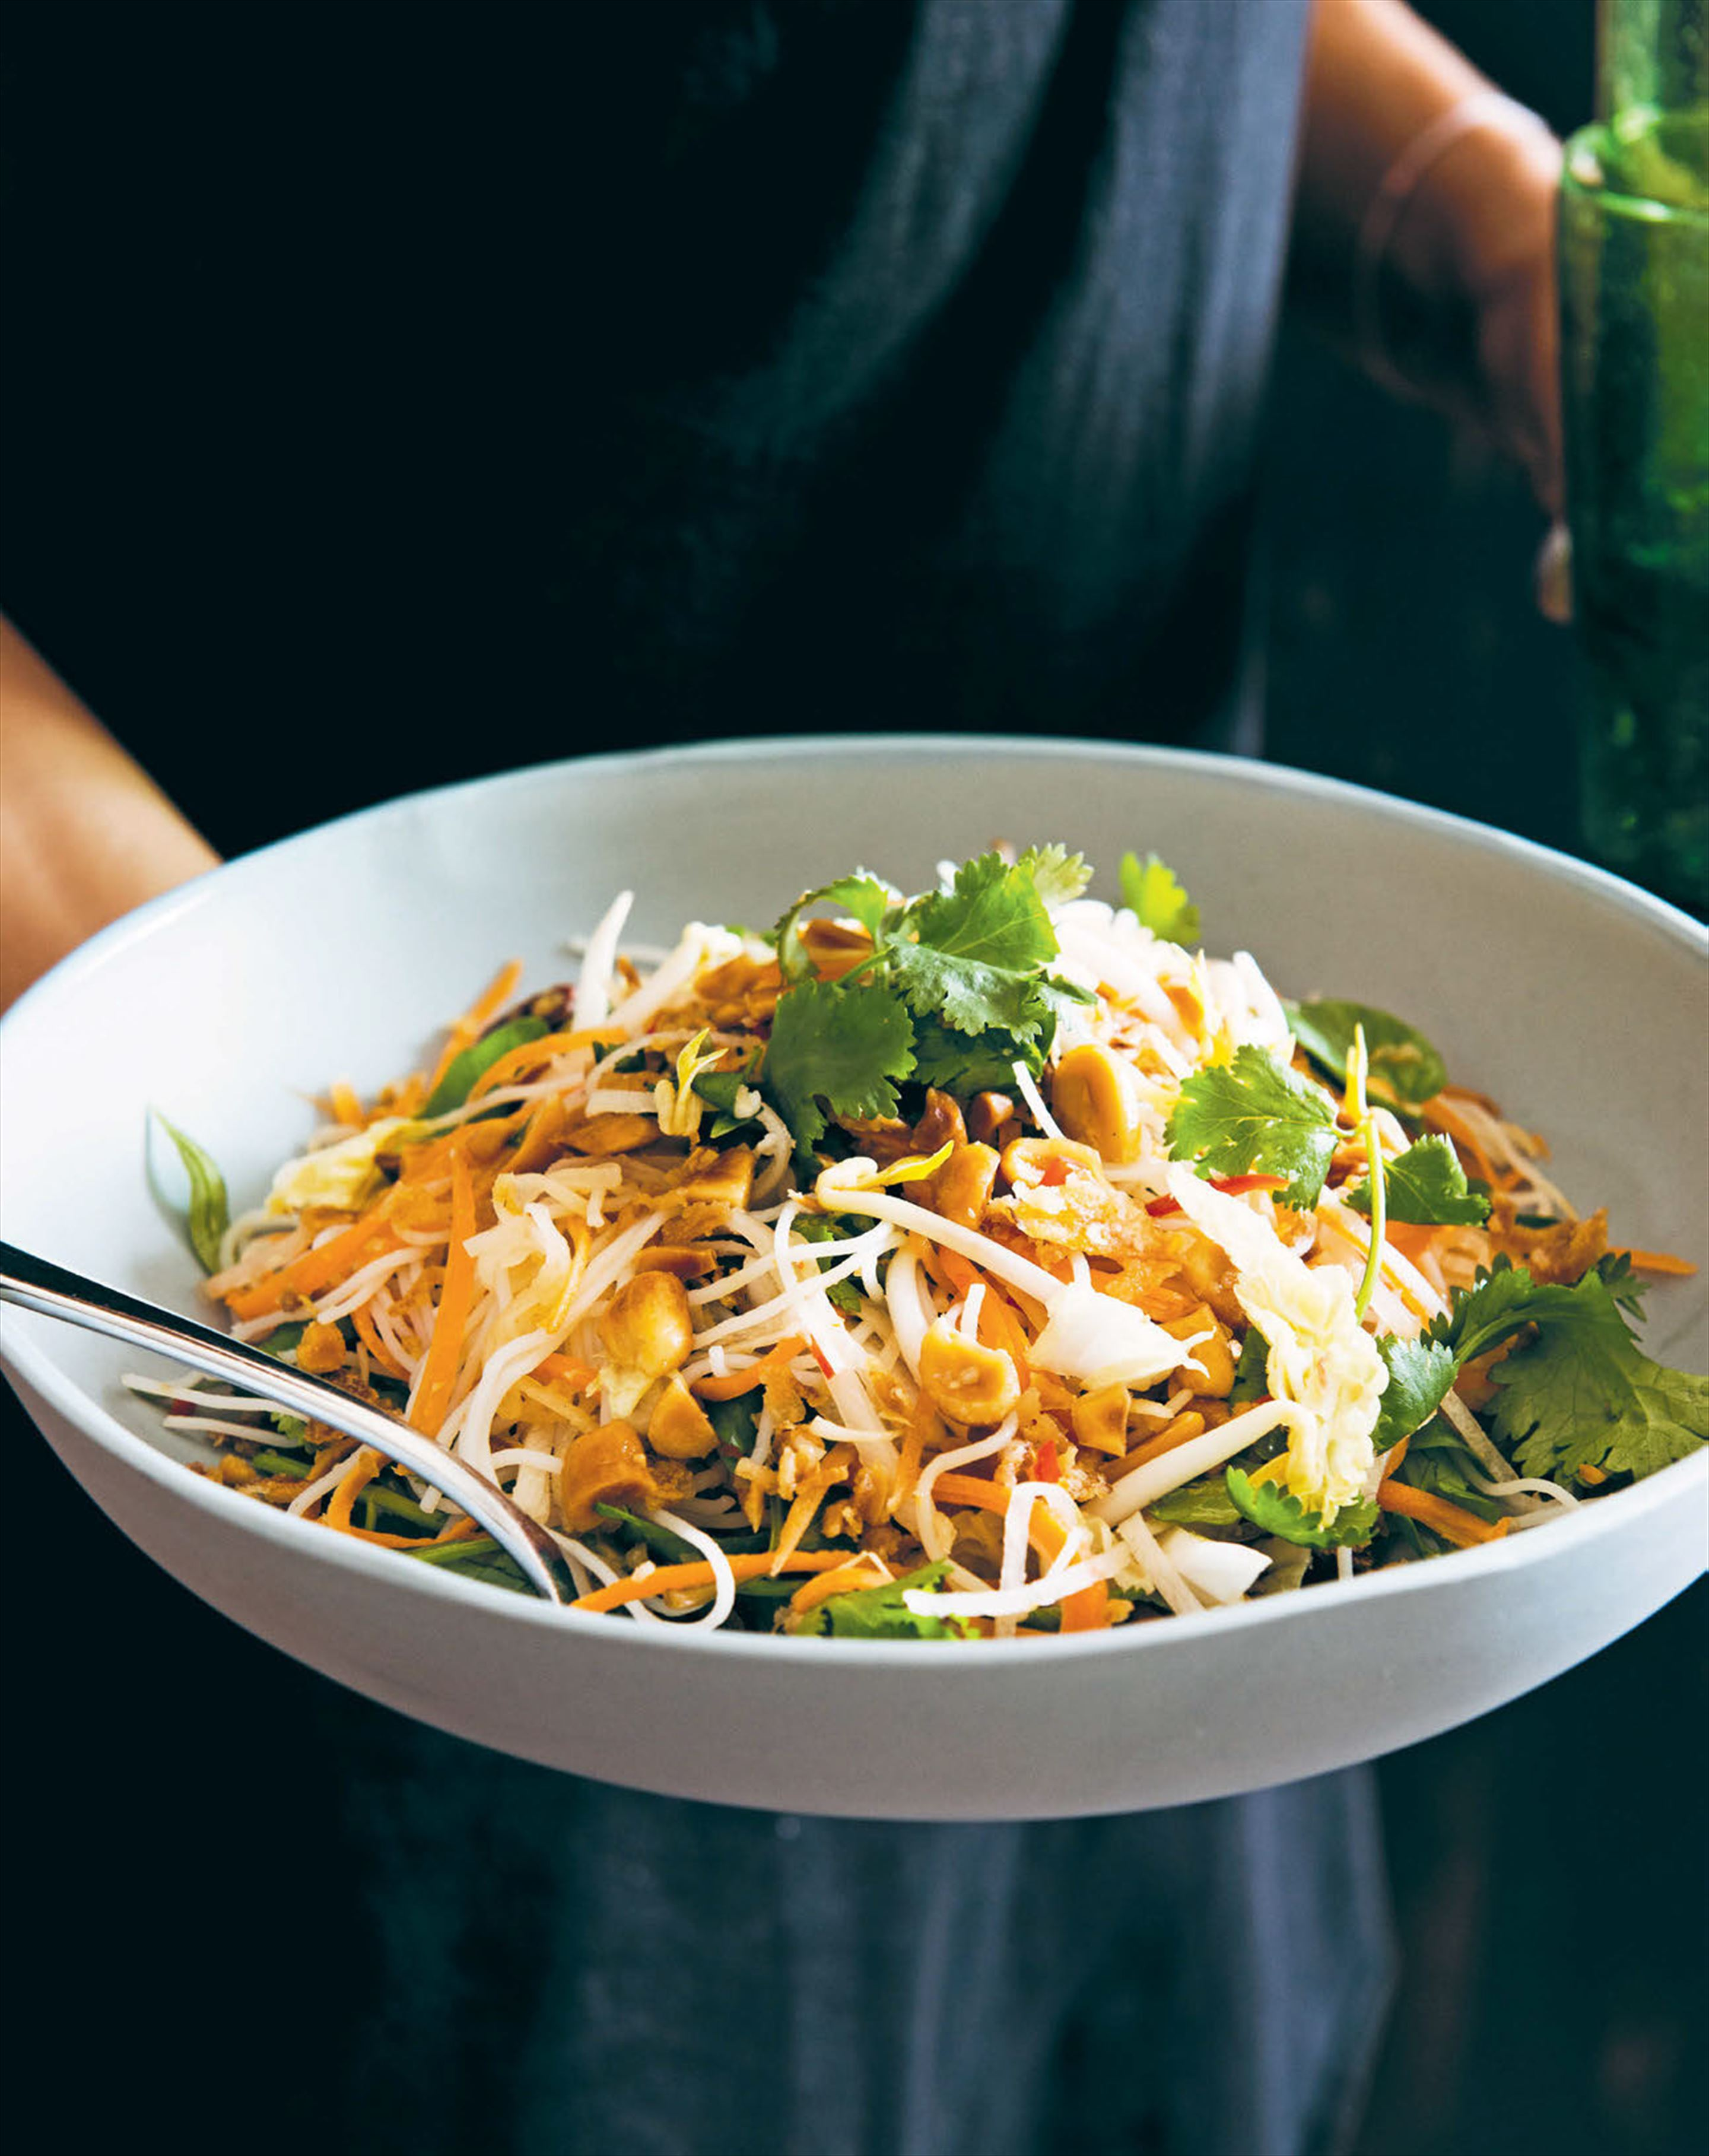 Vermicelli noodle salad with thai chilli dressing